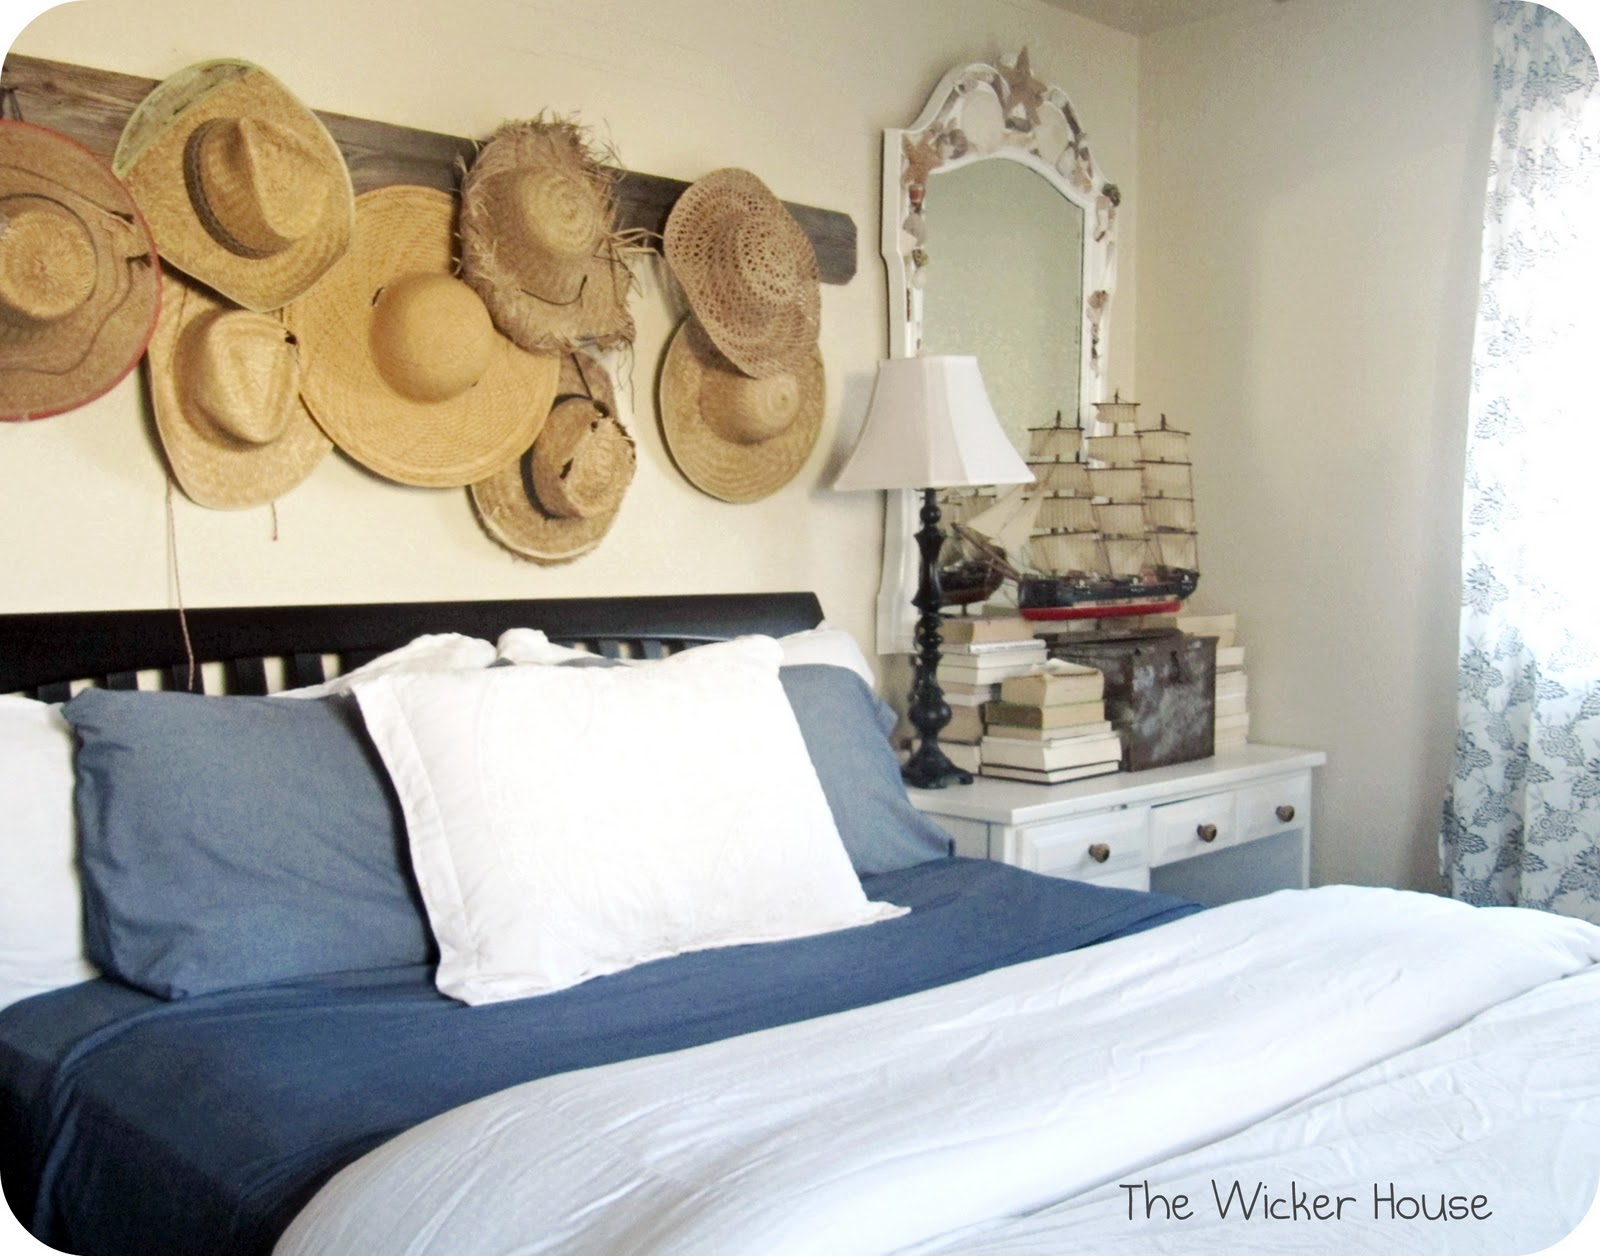 Decorating With Hats Decorating With Straw Hats Part 2 The Wicker House